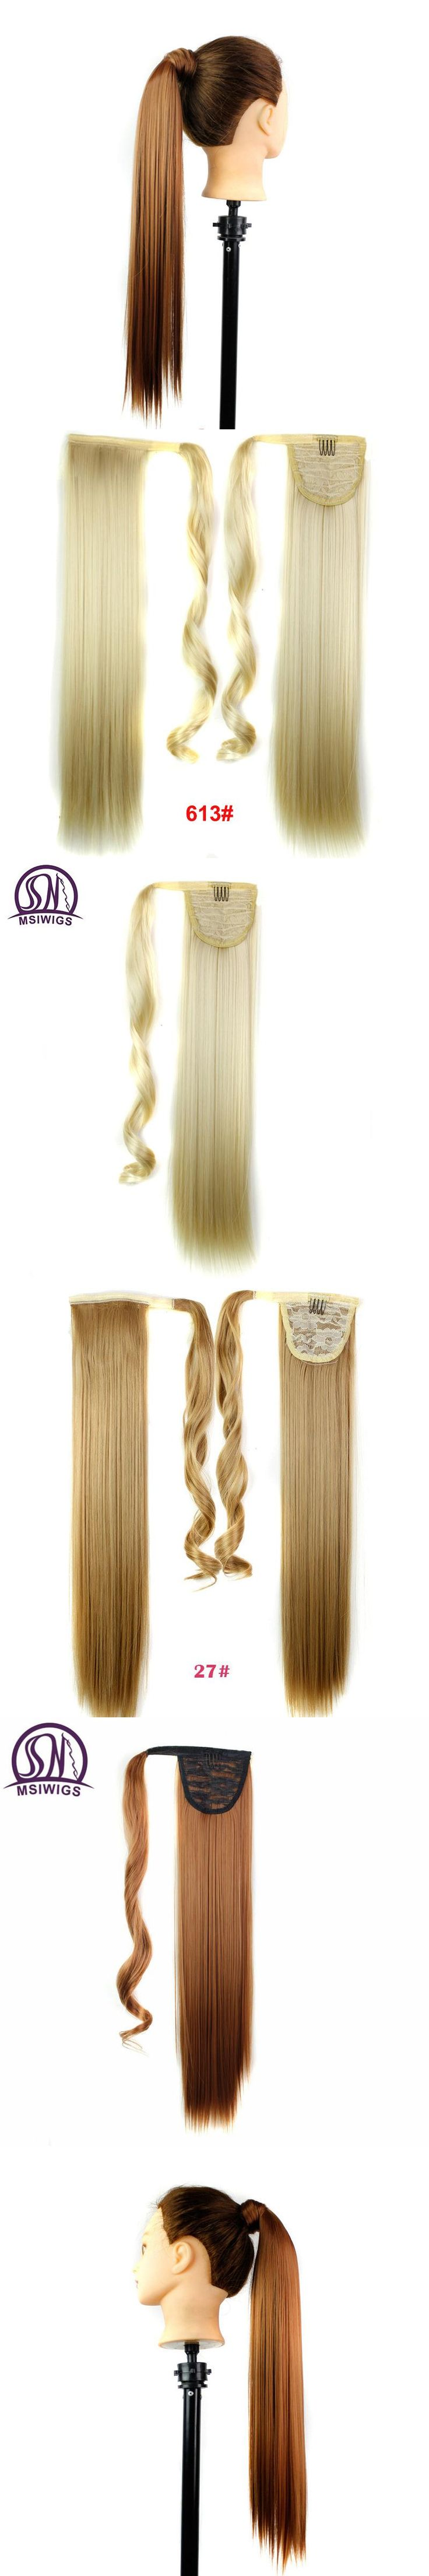 MSIWIGS Long Wrap On Synthetic Straight Ponytails for Women Natural Clip In Hair Extension Hairpieces Blonde False Hair